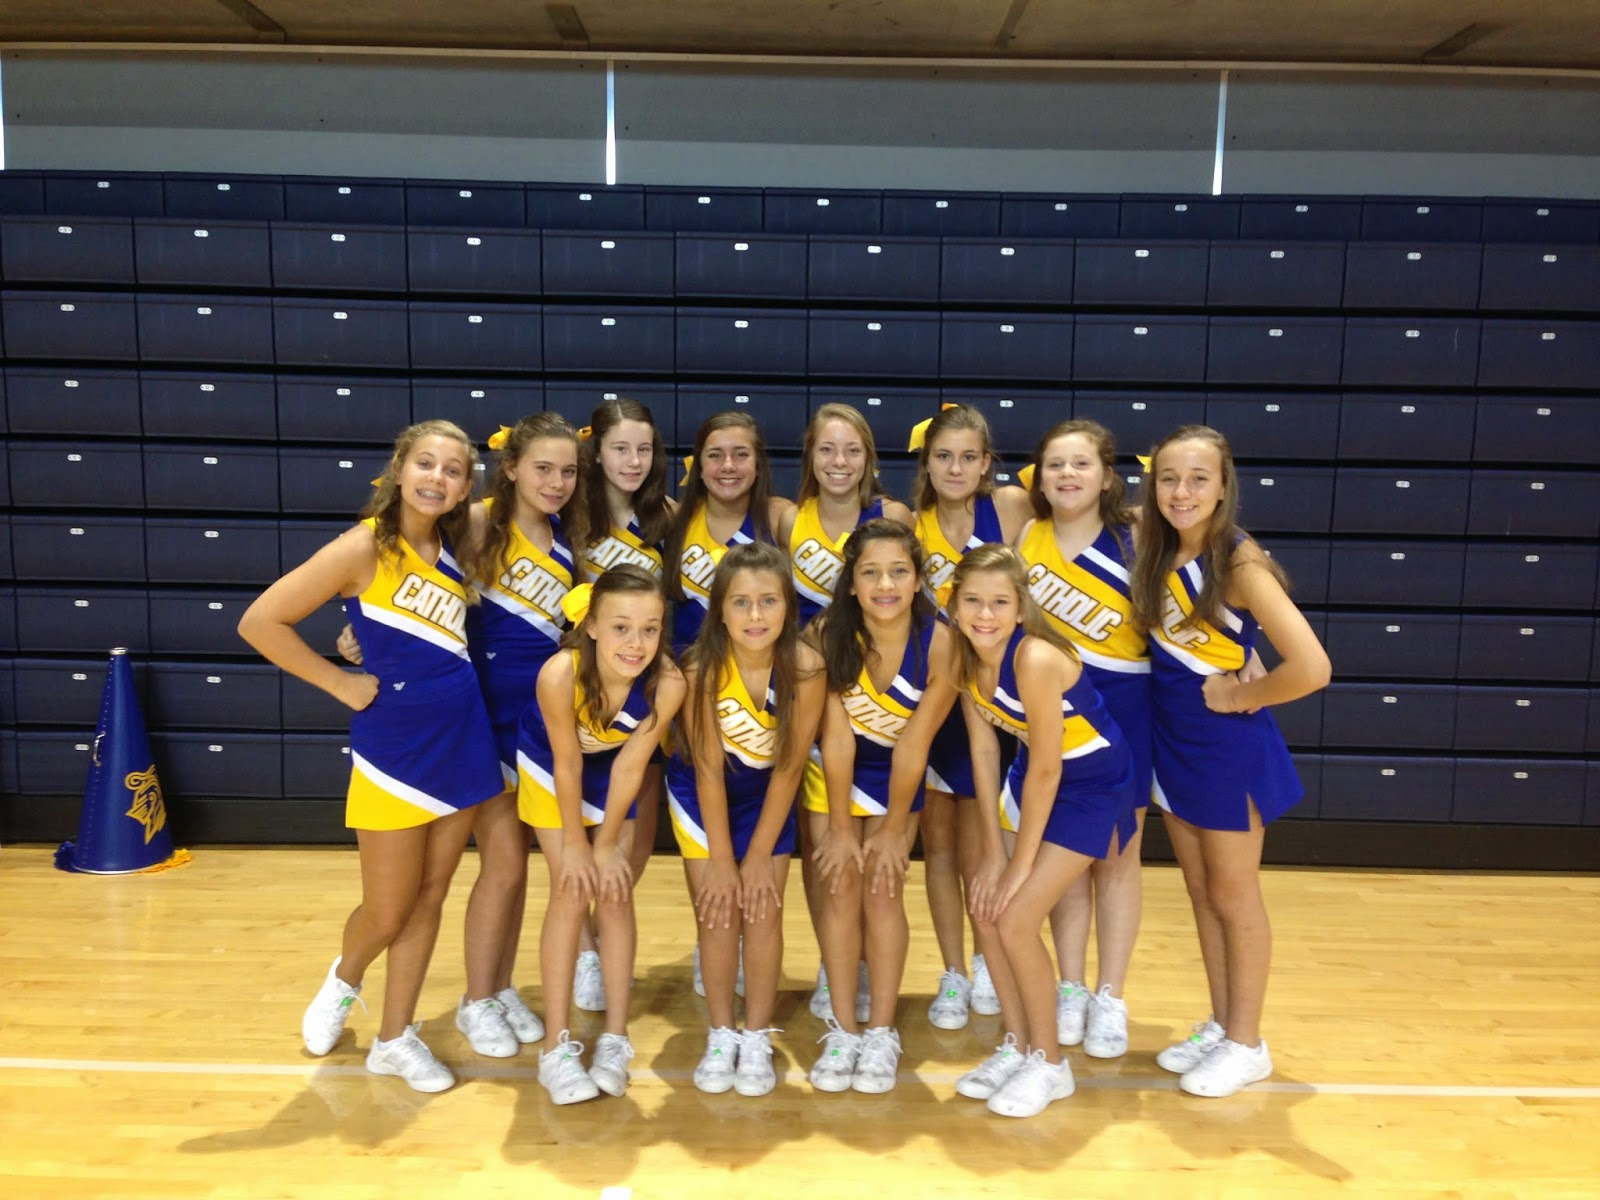 Catholic's JV and Middle School Cheerleaders Attend Camp at Auburn University 2